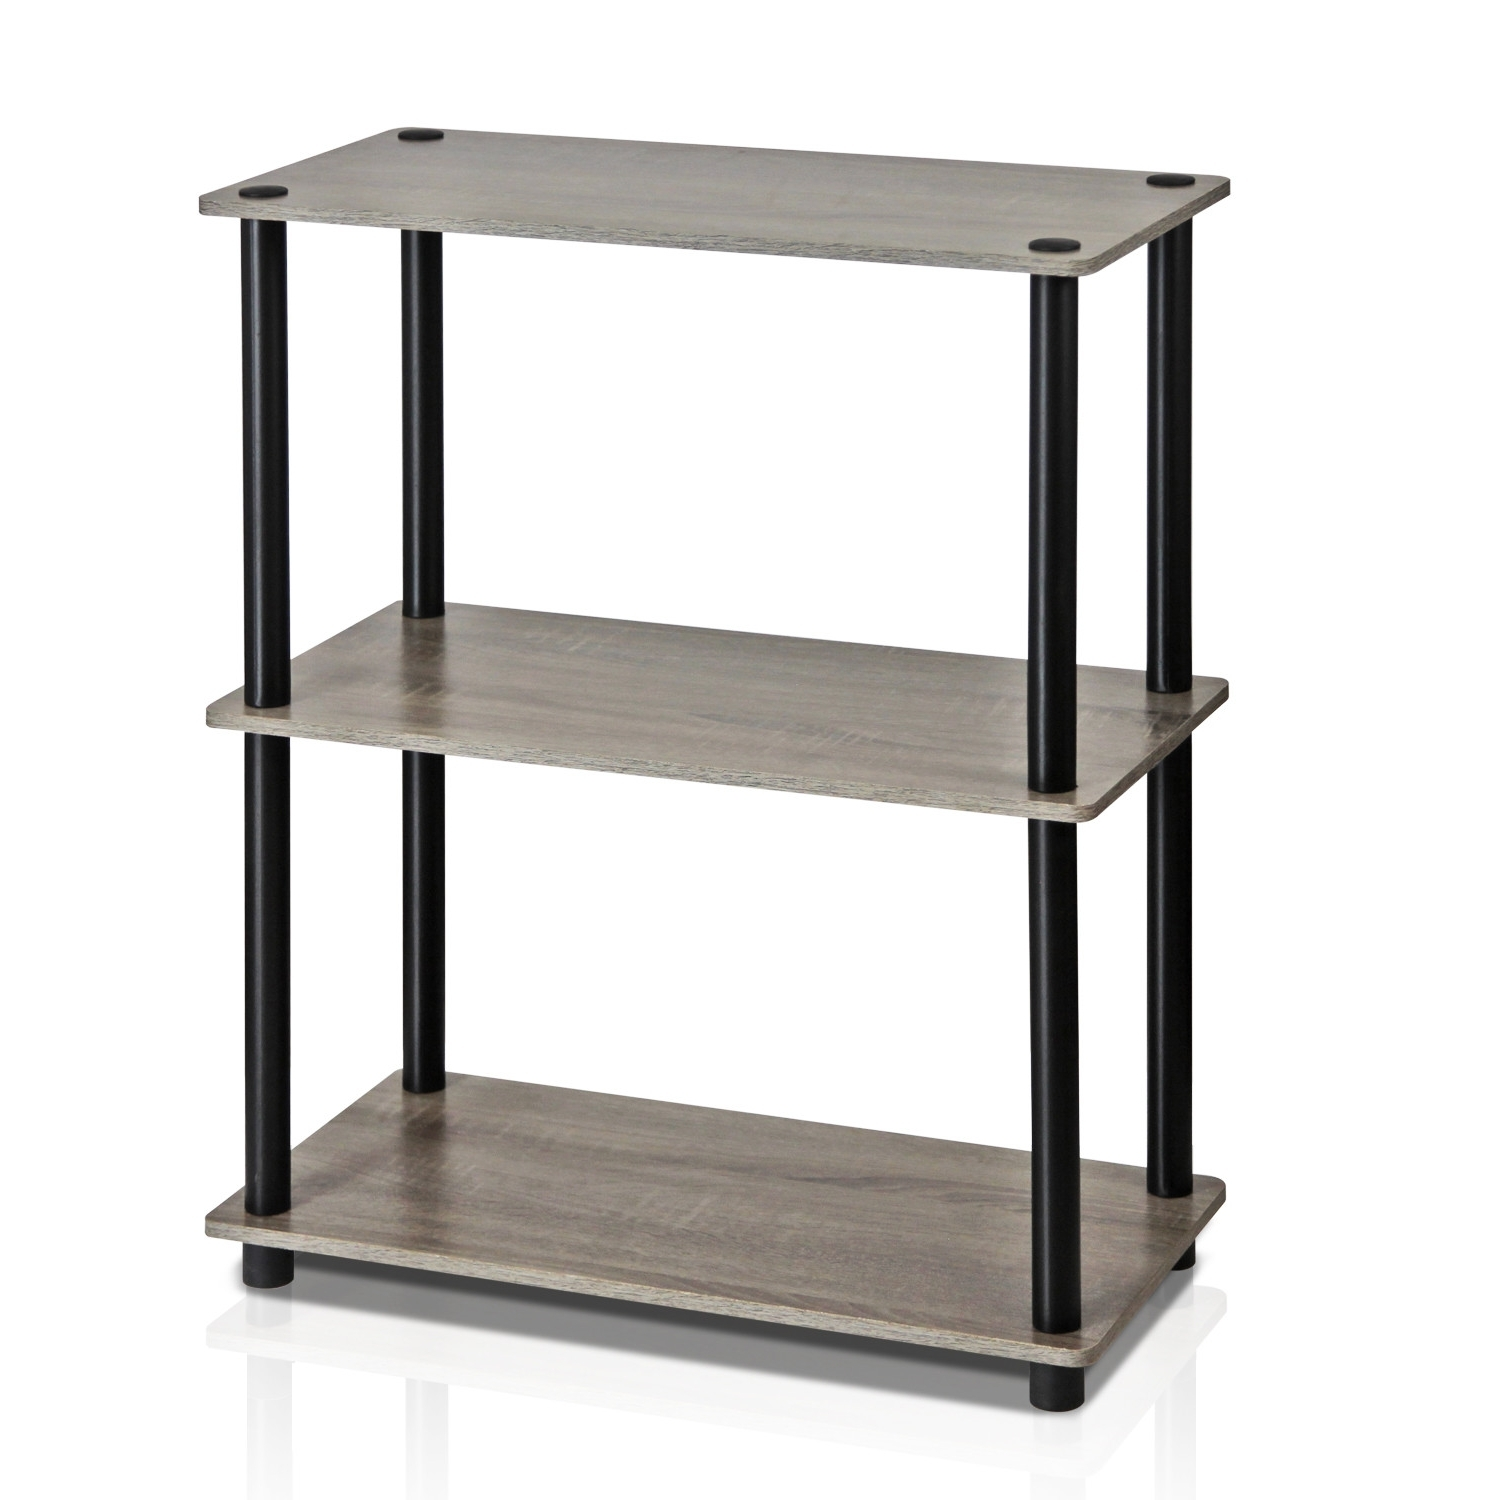 Wildon Home Bookcases With Regard To Fashionable Wildon Home ® Etagere Bookcase (View 6 of 15)